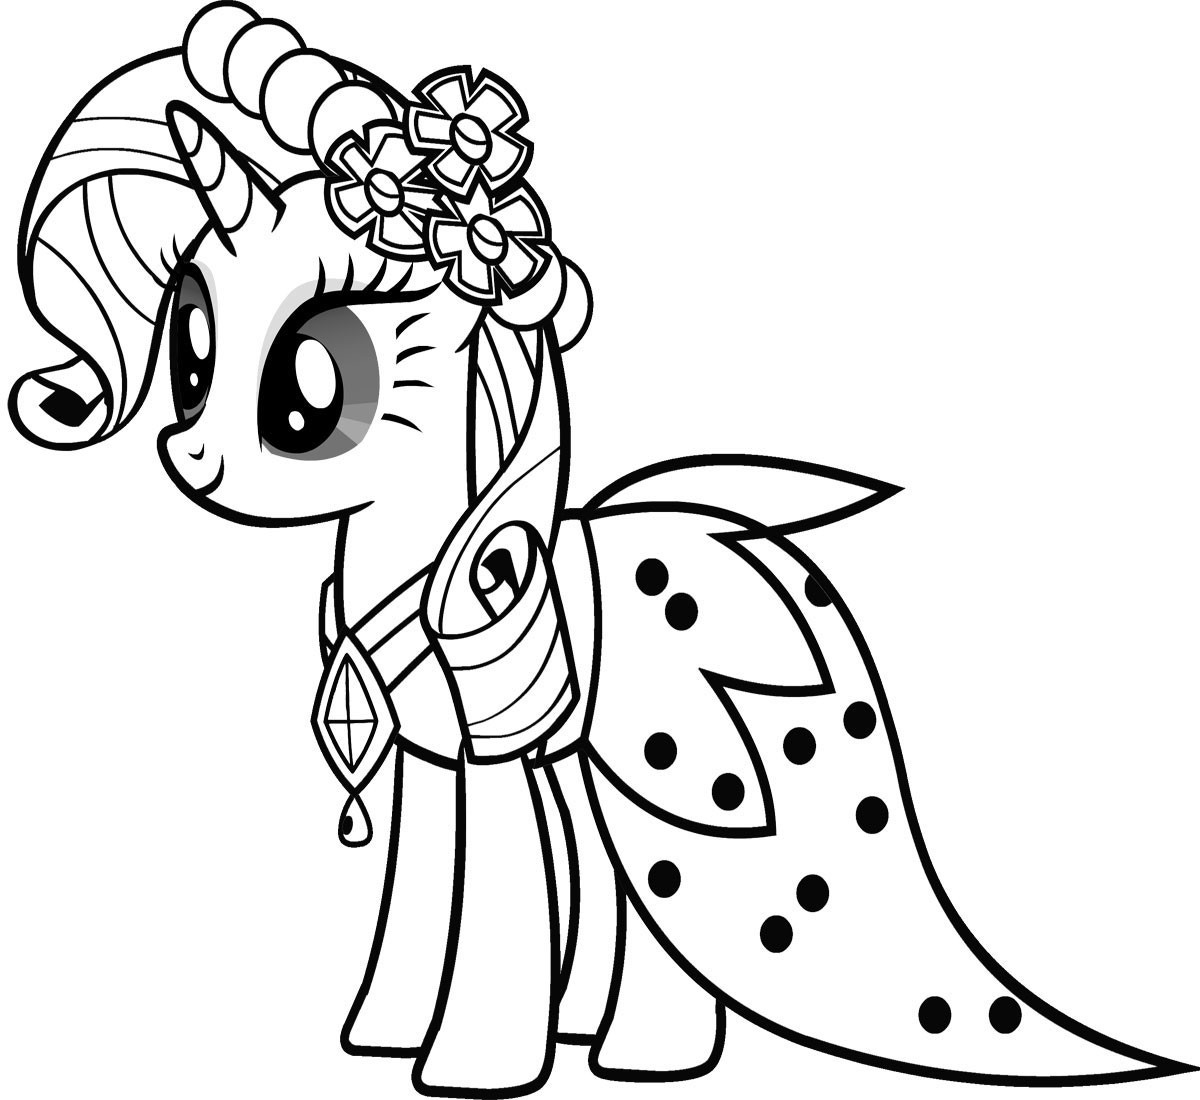 Small Coloring Pages For Kids  Free Printable My Little Pony Coloring Pages For Kids